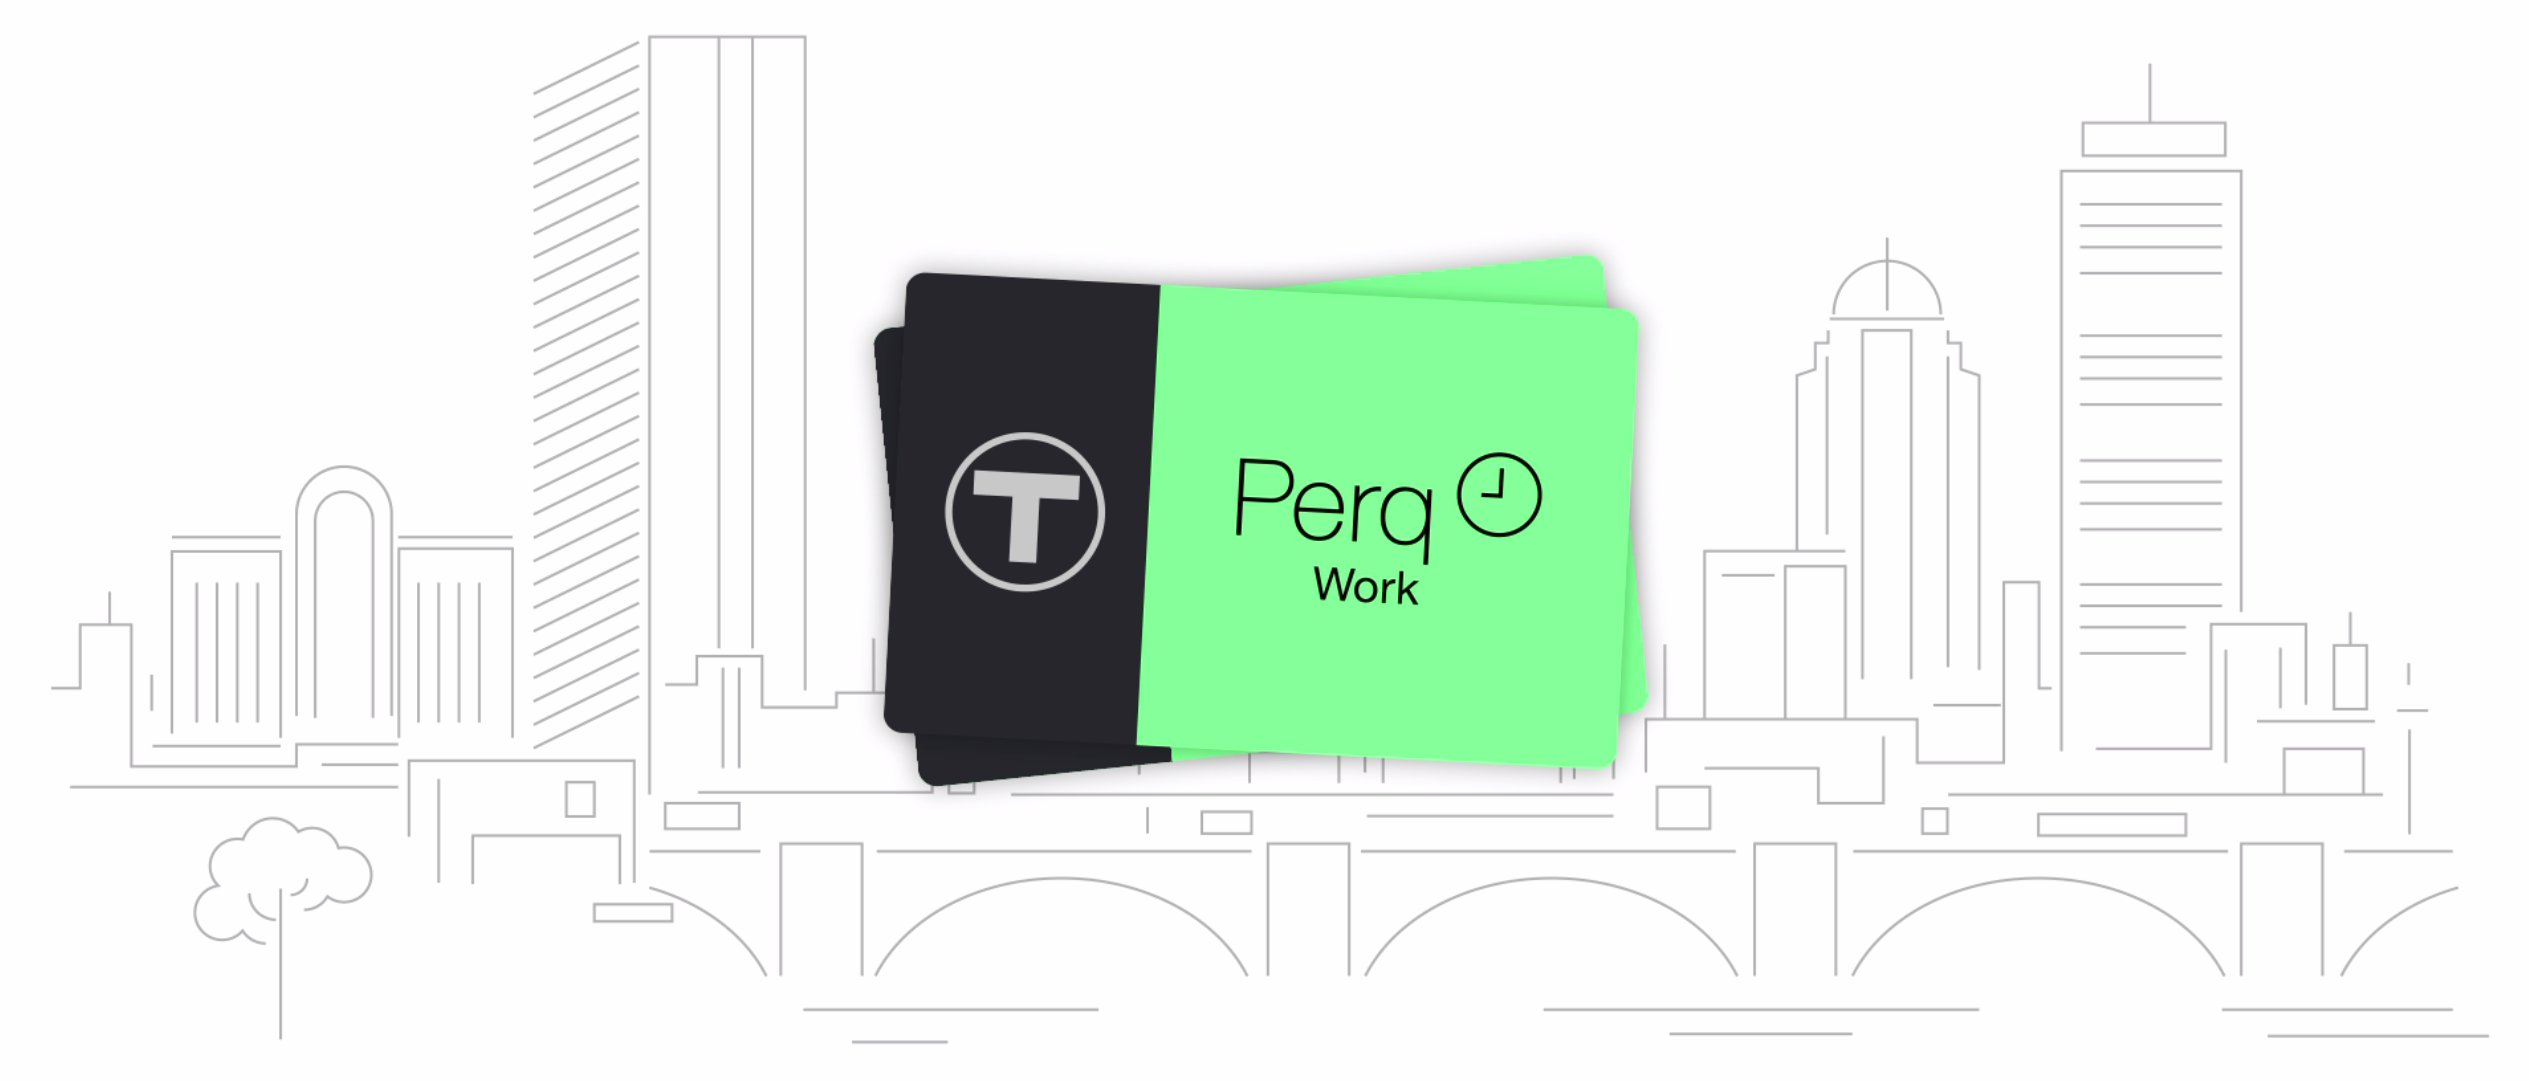 Perq Work cards with and outline of the cityscape as background